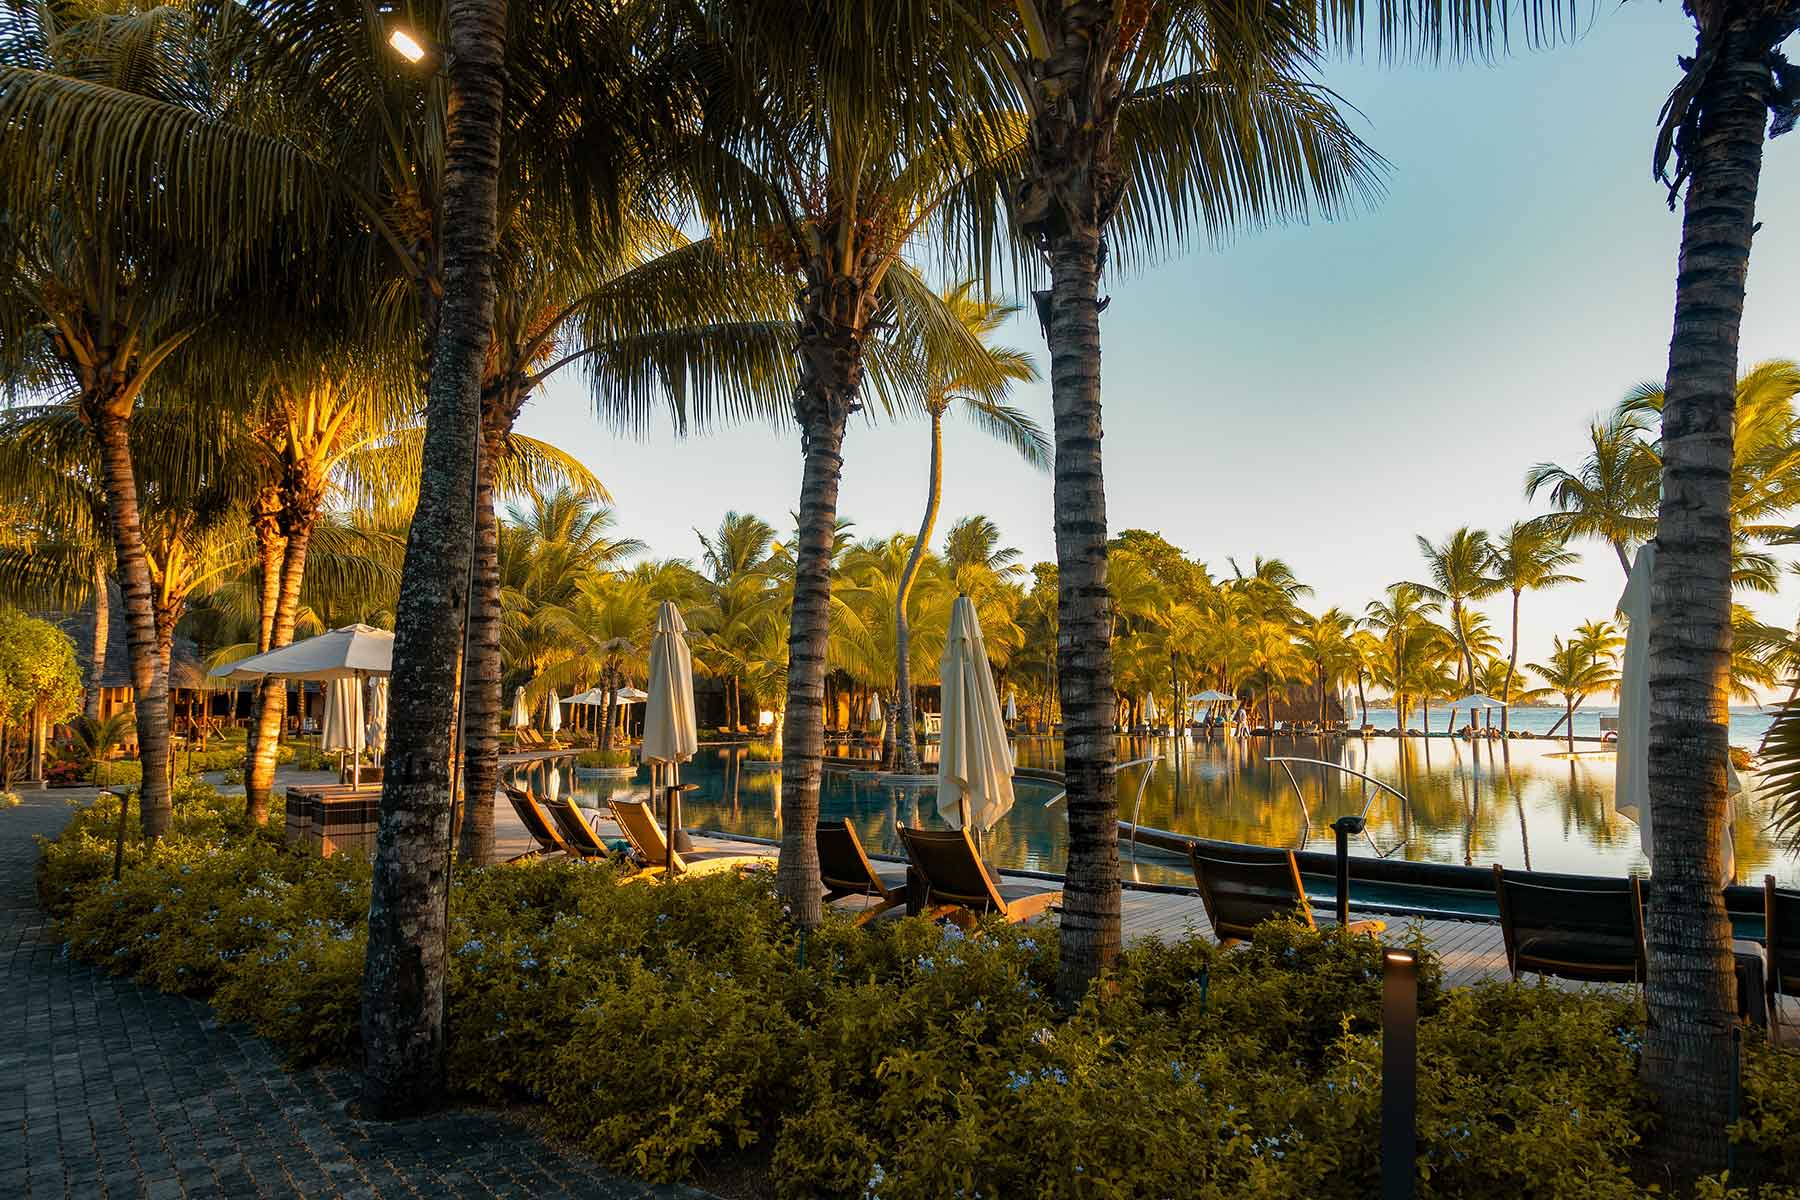 Trips-to-Mauritius-Nygren-&-Lind-Travel-agency---luxury-resort-with-pool